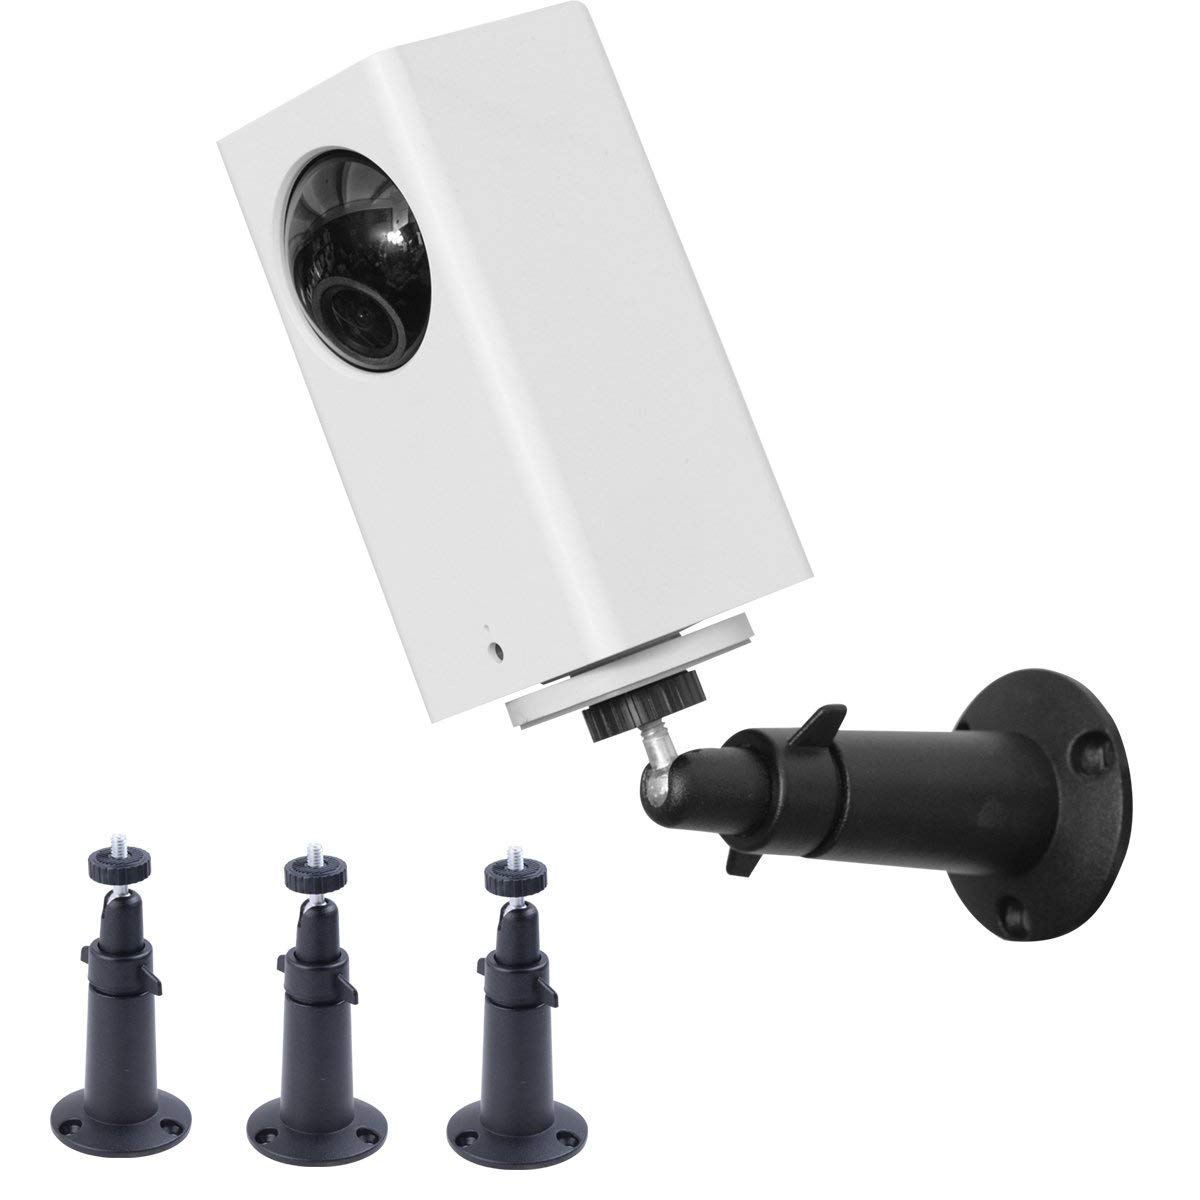 (Pack of 3) Aboom Wall Mount for Wyze Cam Pan and Arlo pro,360 Degree Swivel Ceiling Mount Bracket